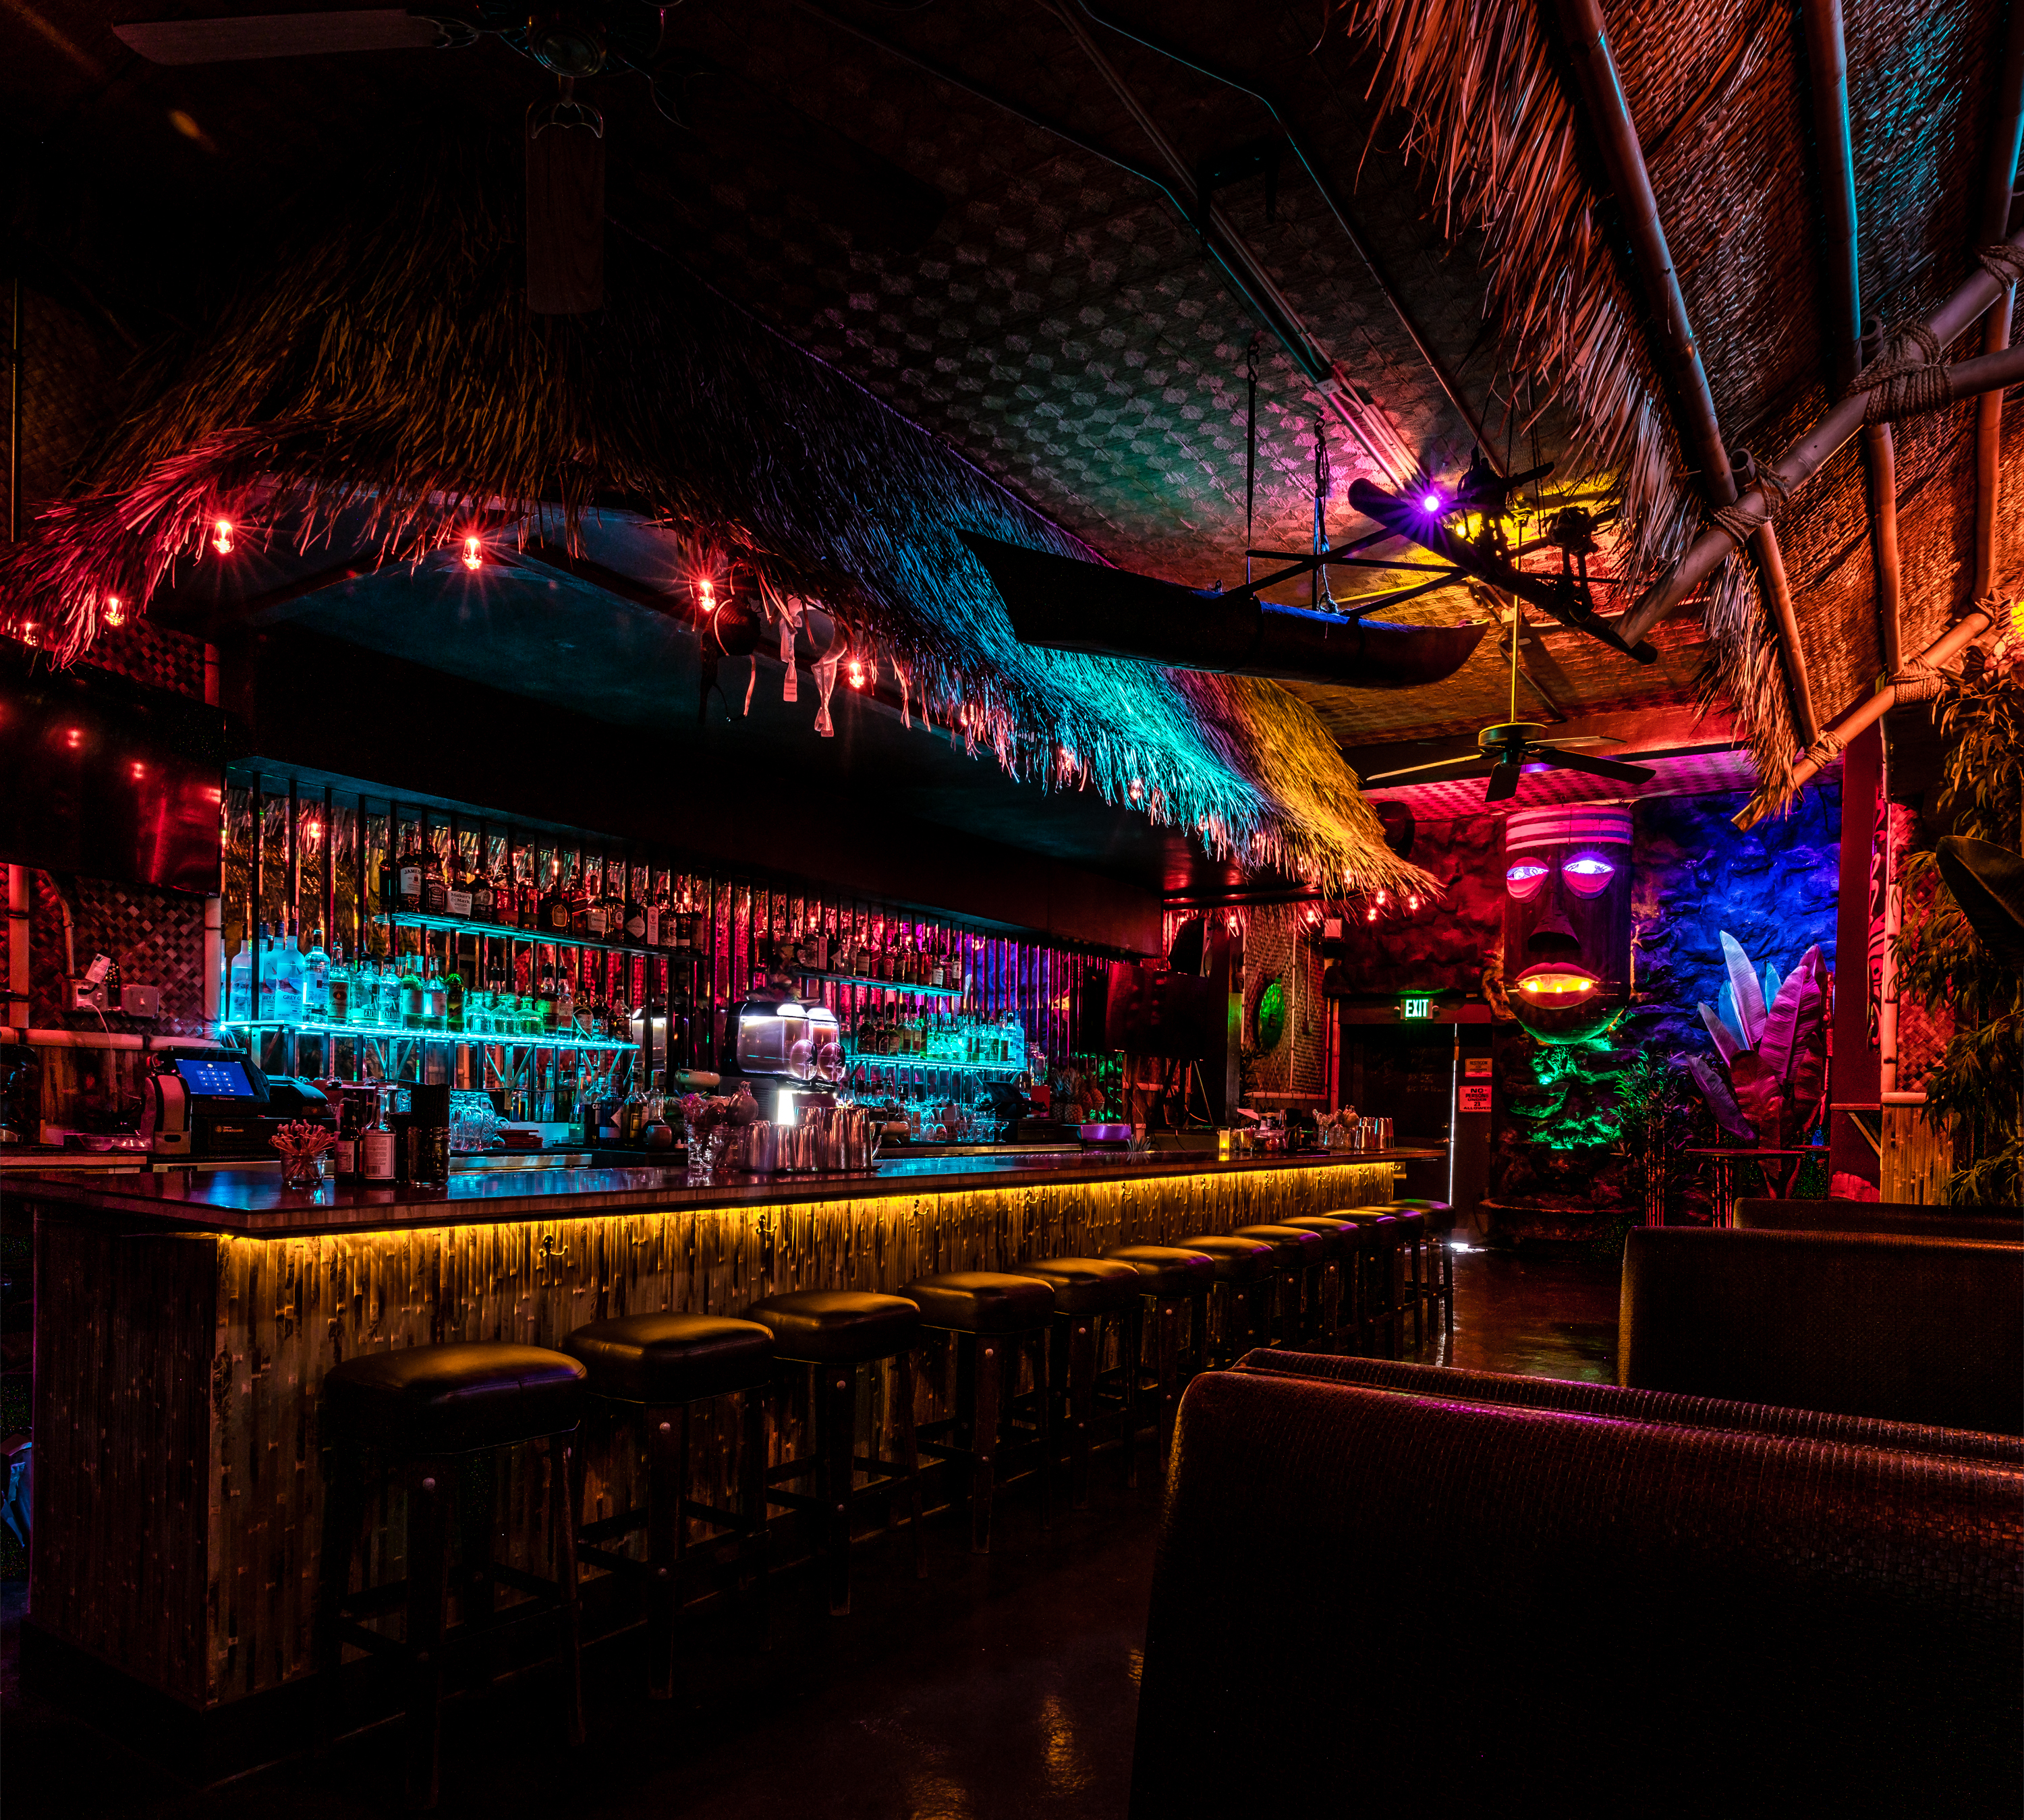 Inside the bamboo hut, where a thatched bar is lit by multi-color lights